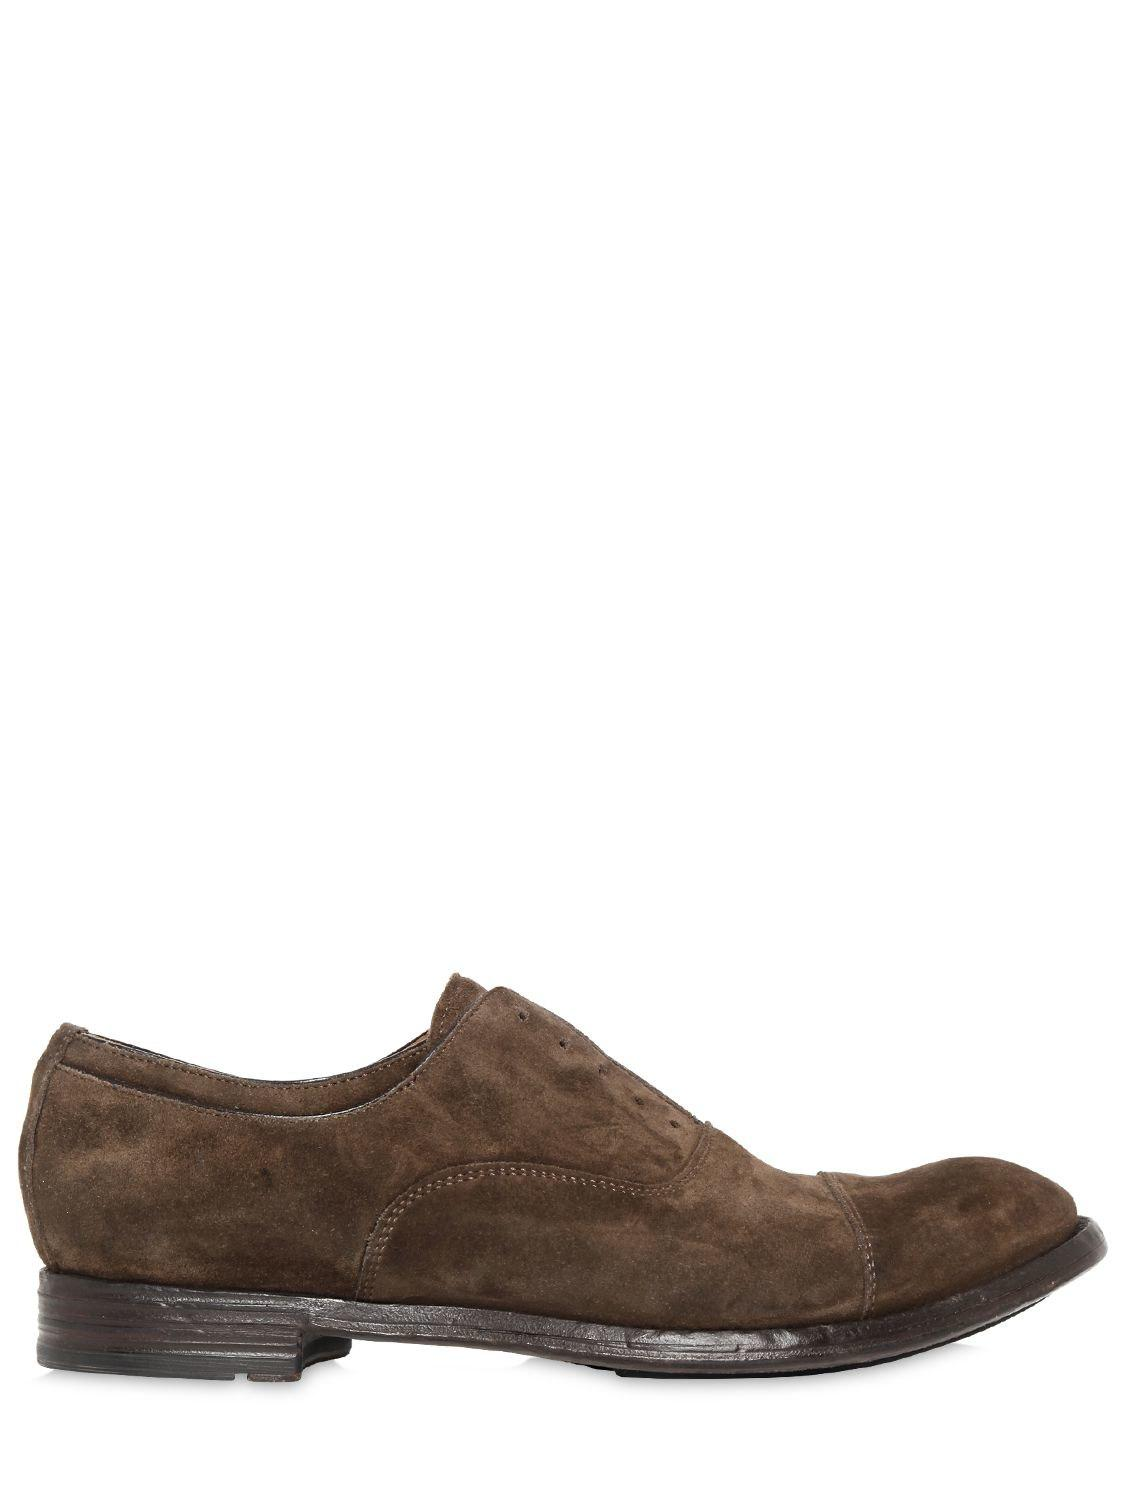 lace-up oxford shoes - Brown Officine Creative MnHUoKz1oV